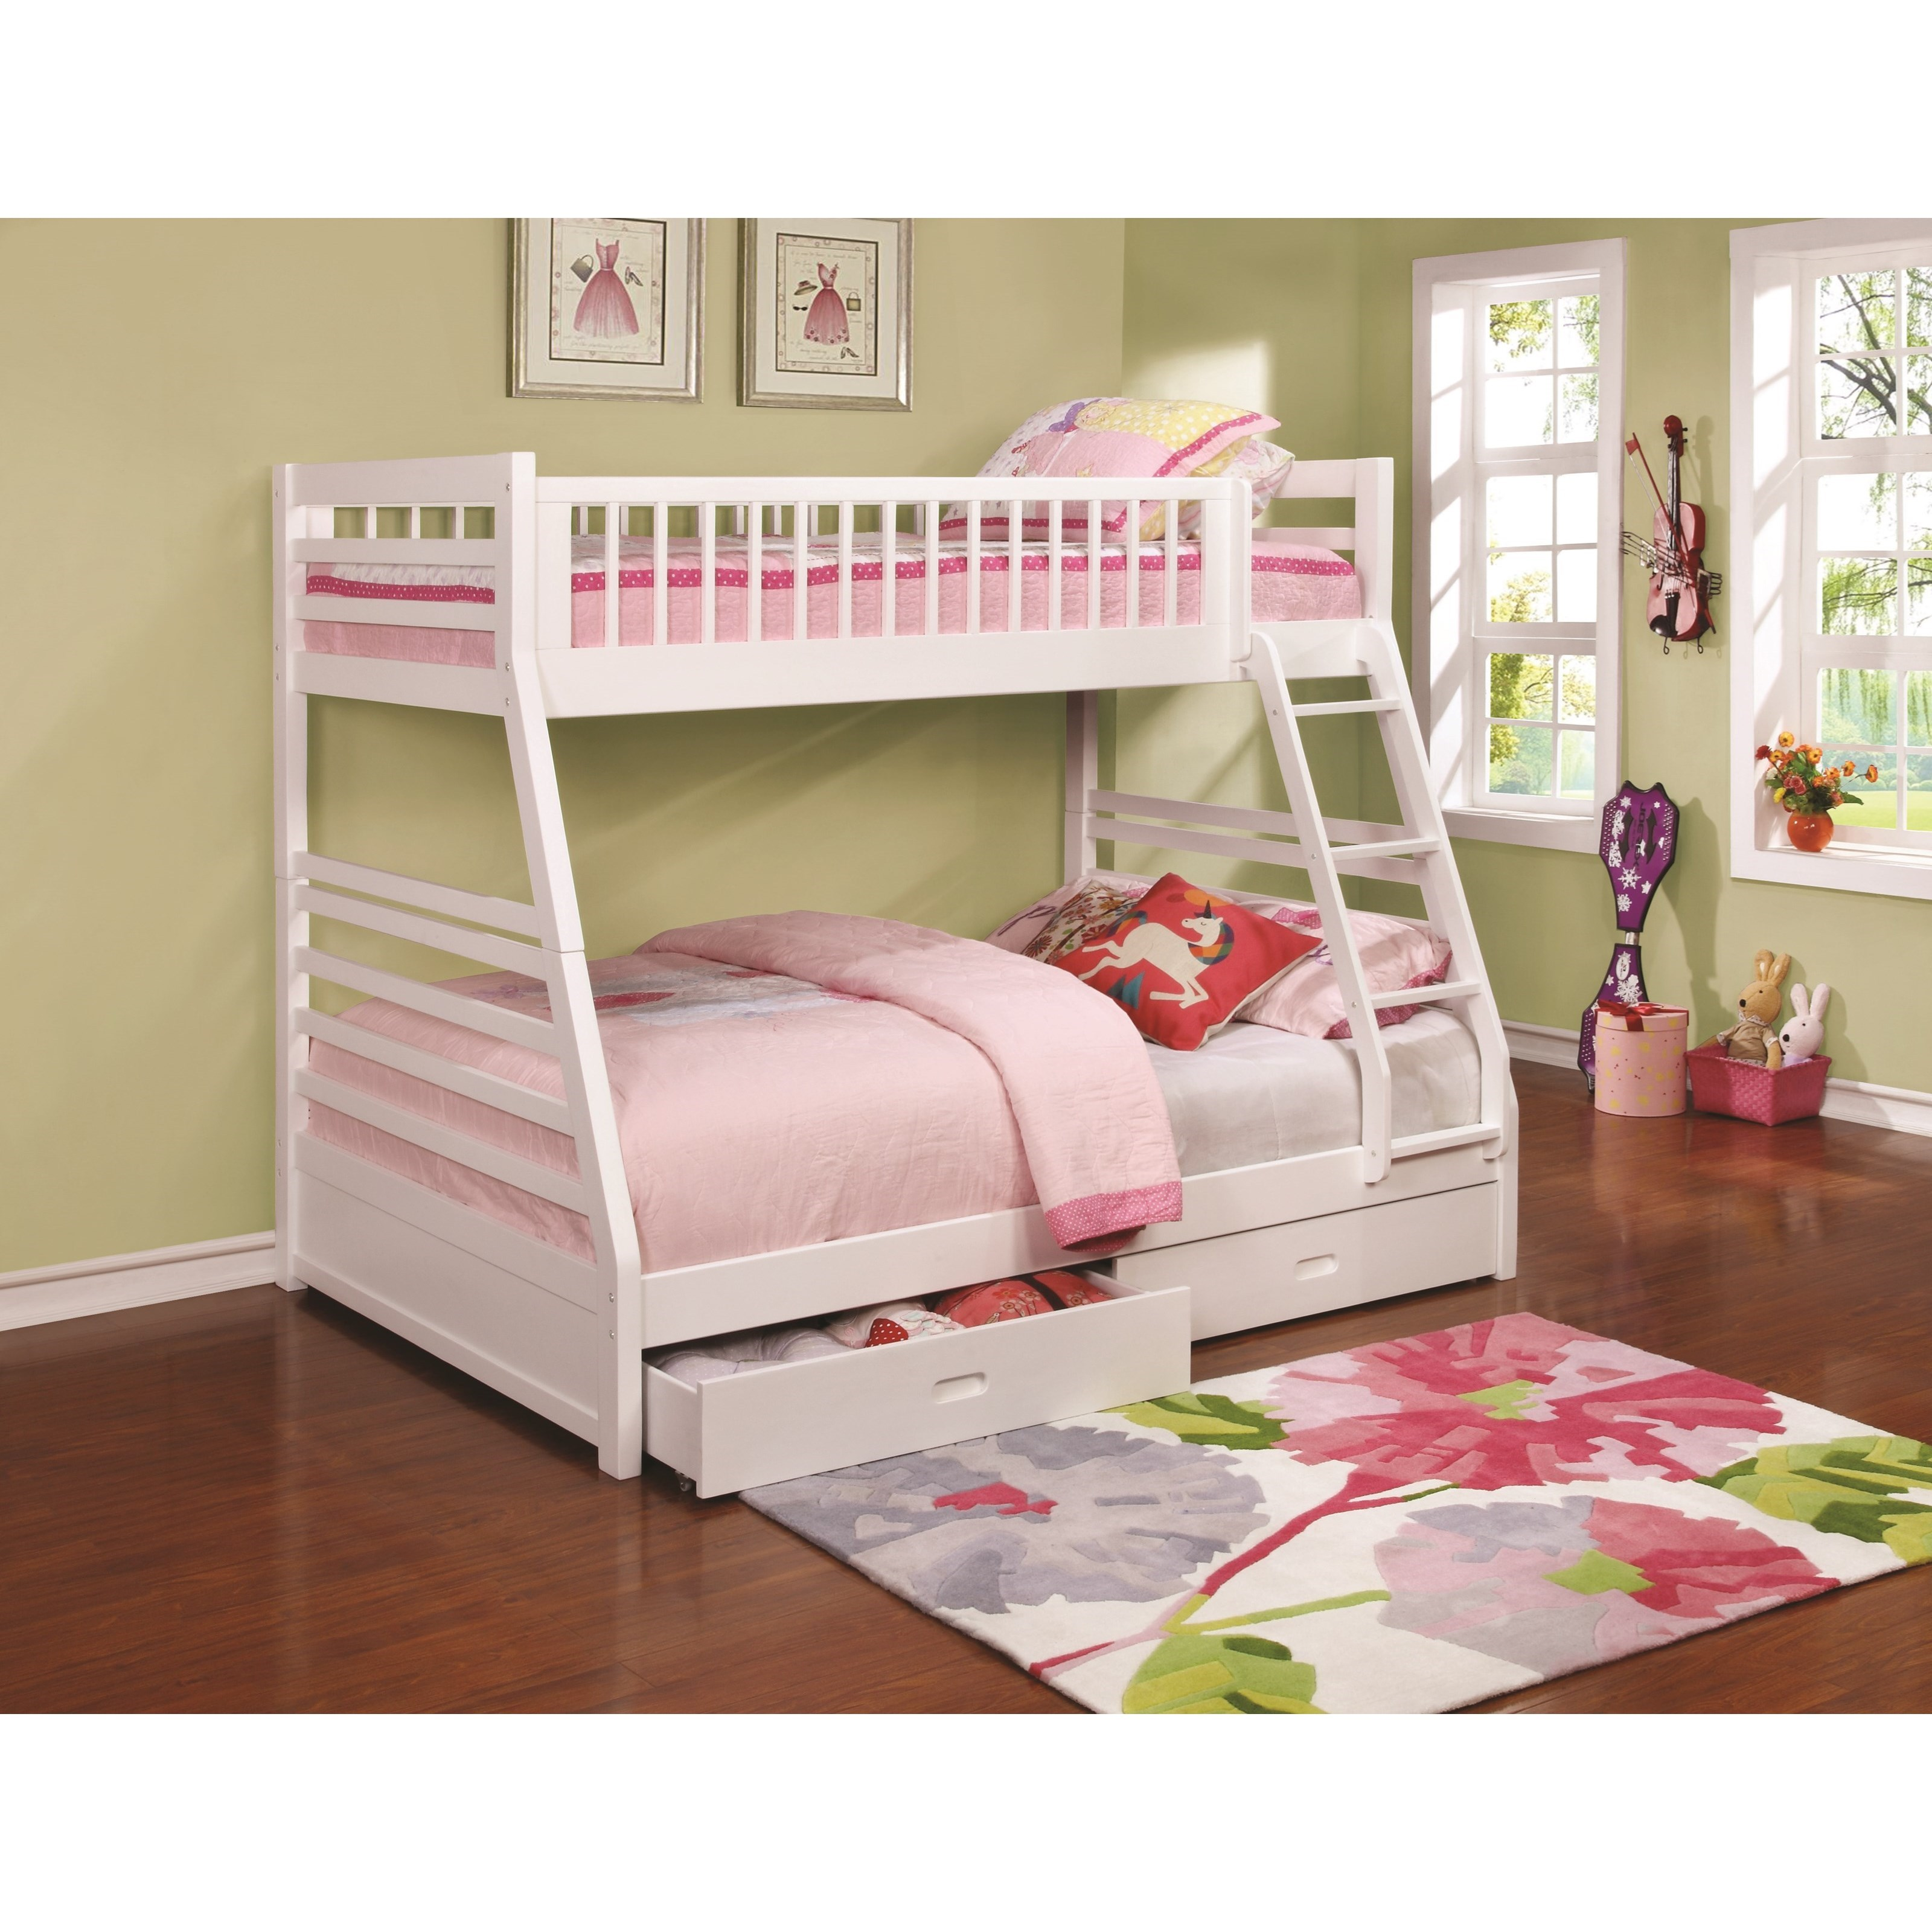 Coaster Bunks 460180 Twin over Full Bunk Bed with 2 Drawers and ...